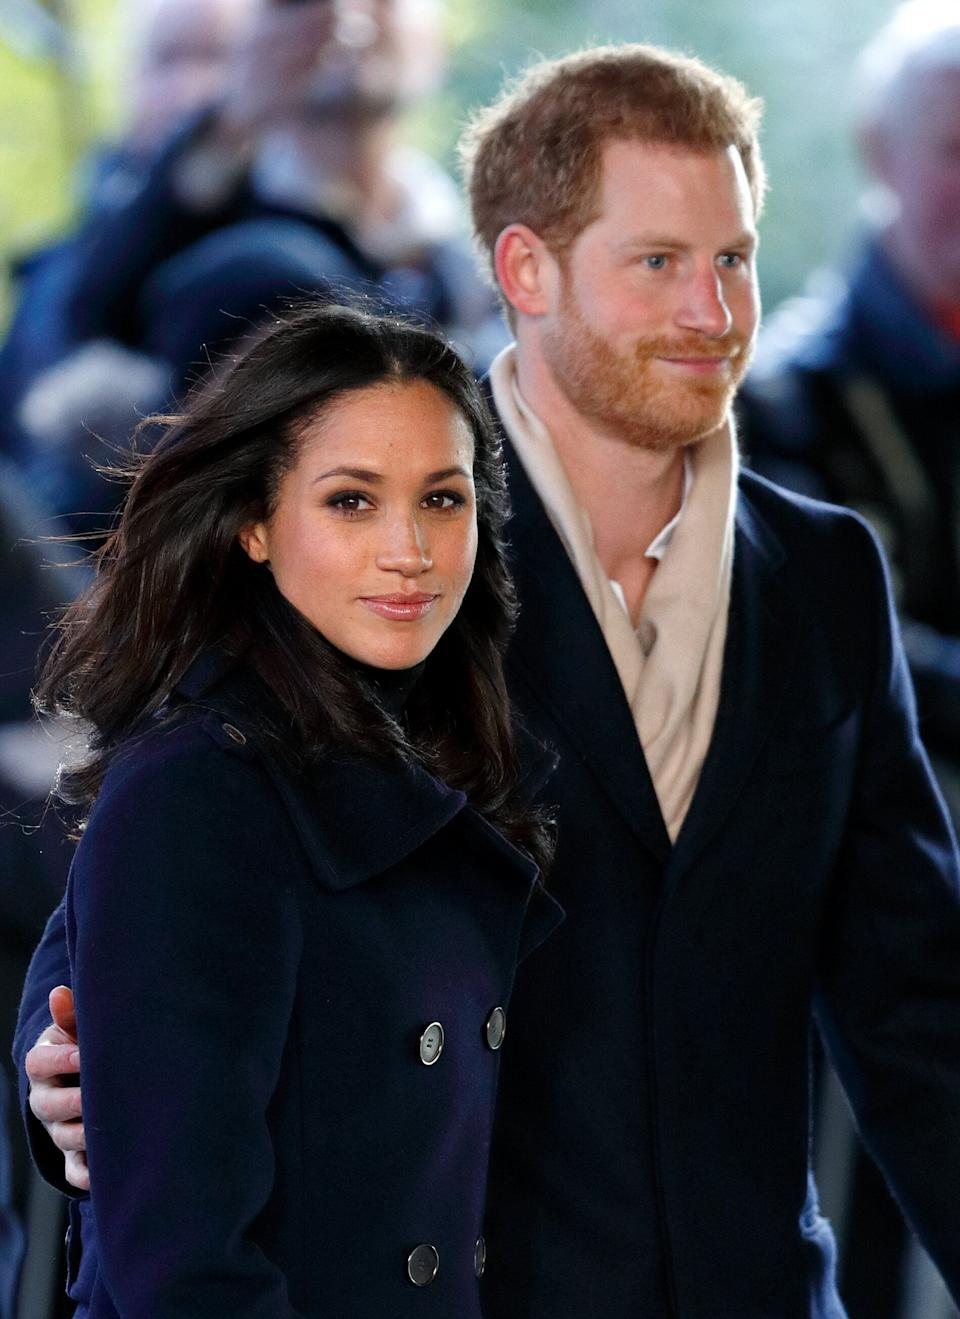 Meghan Markle and Prince Harry in December 2017, shortly after they got engaged. (Photo: Max Mumby/Indigo via Getty Images)